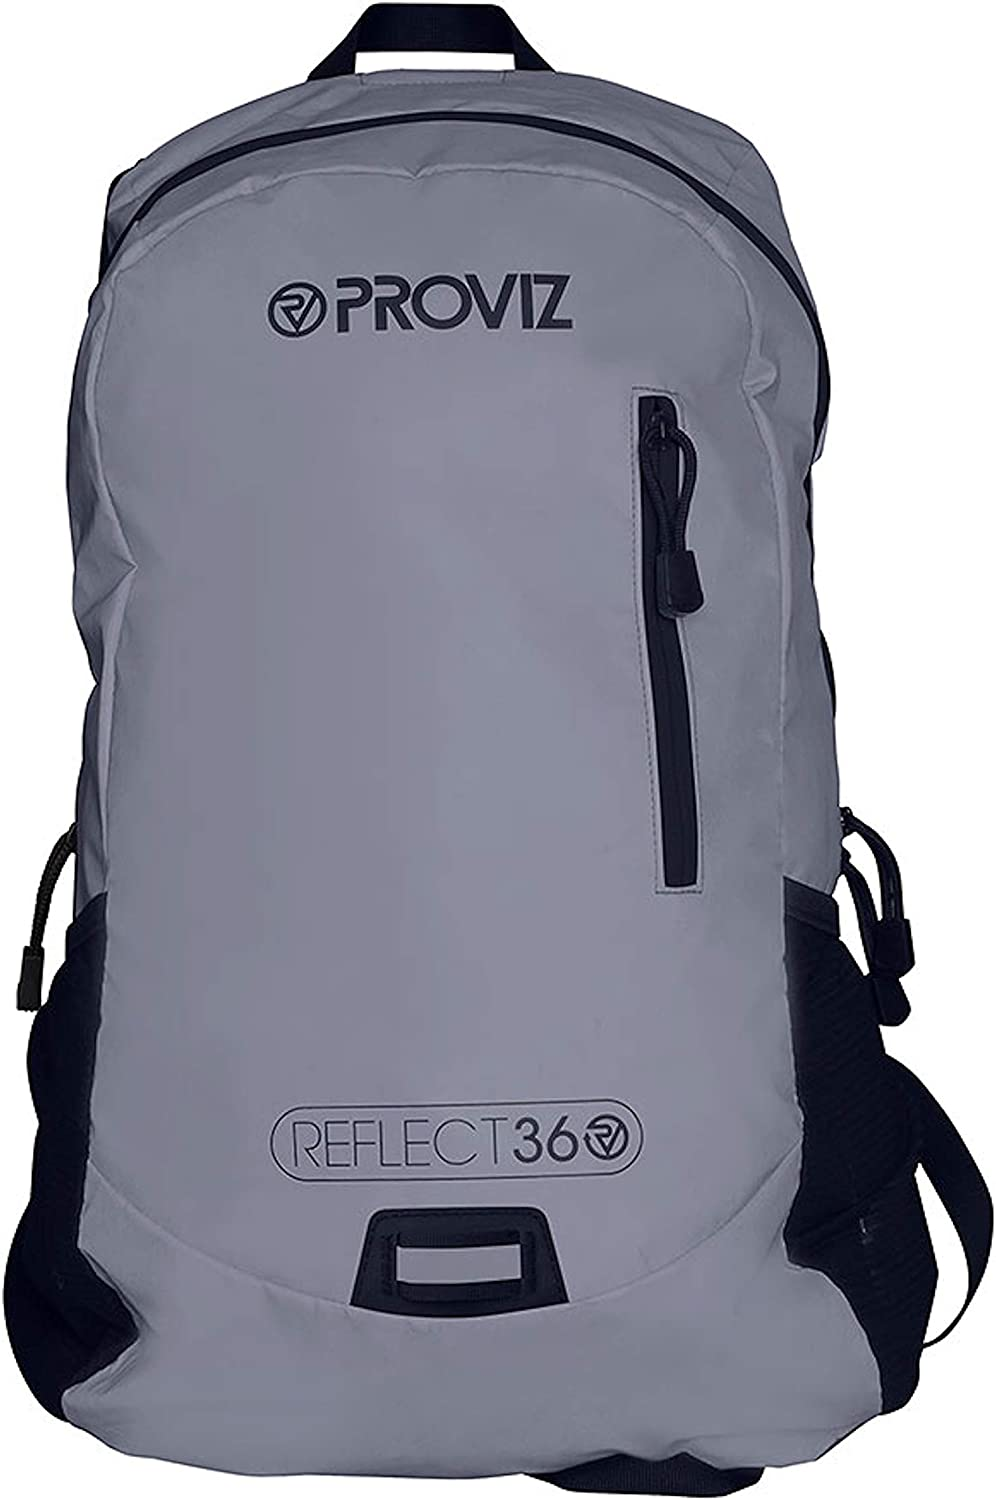 Proviz Sports Reflect360 100 Reflective High-Viz Highly Water Resistant Backpack Rucksack